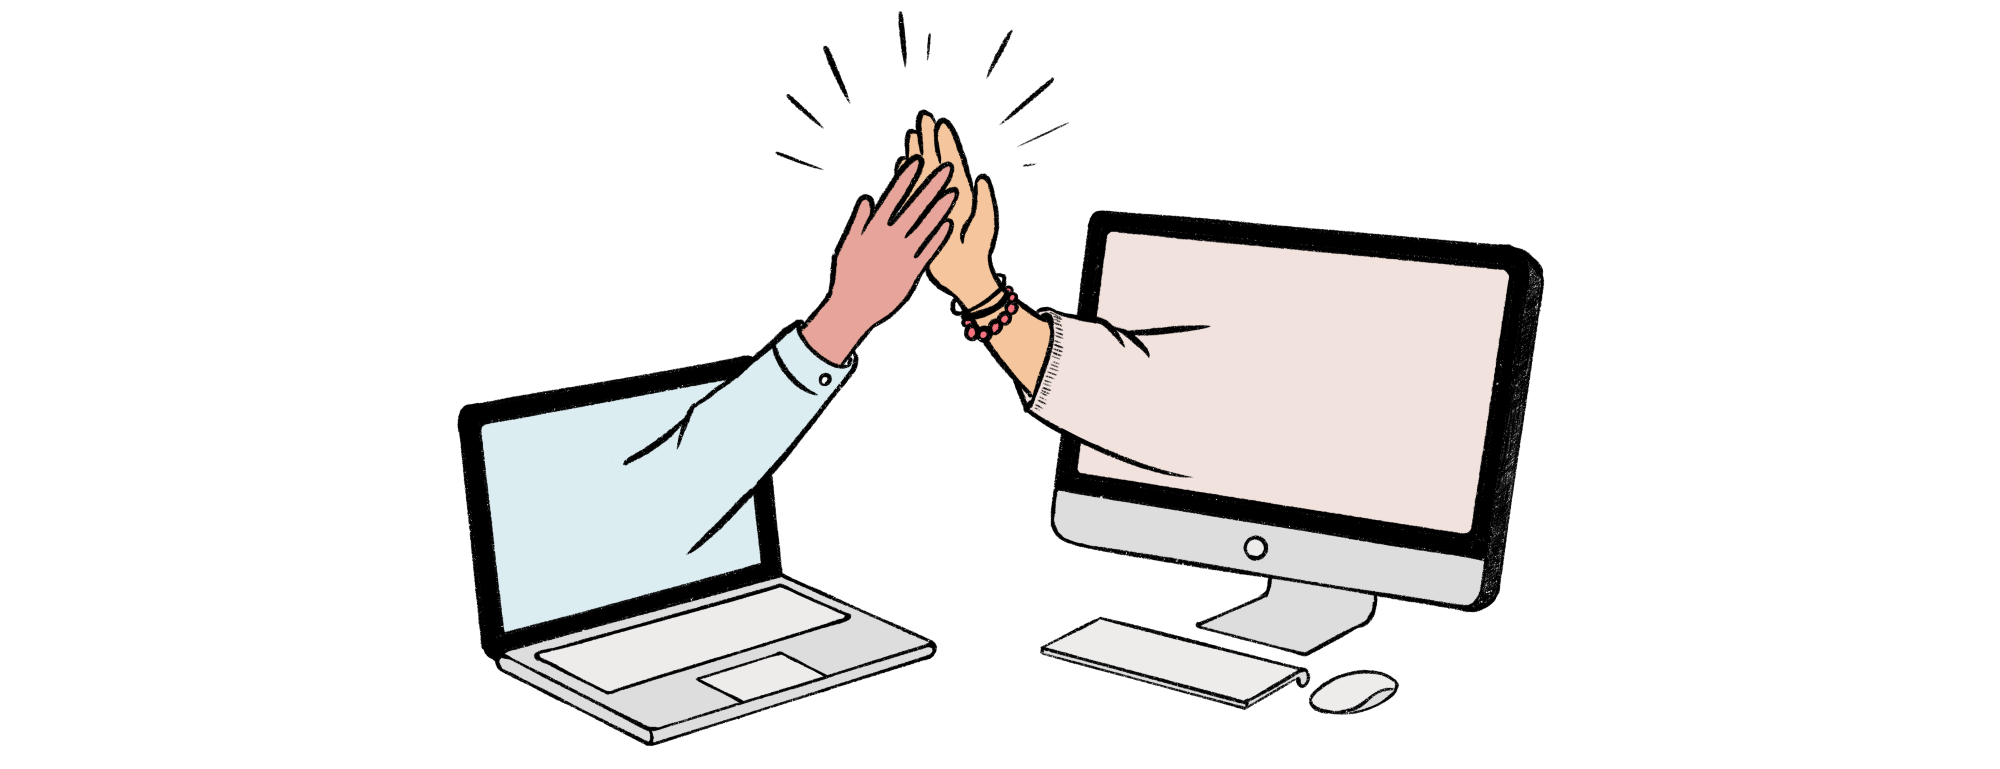 Abstract image depicting successful remote collaboration using two hands high-fiving from separate computers.